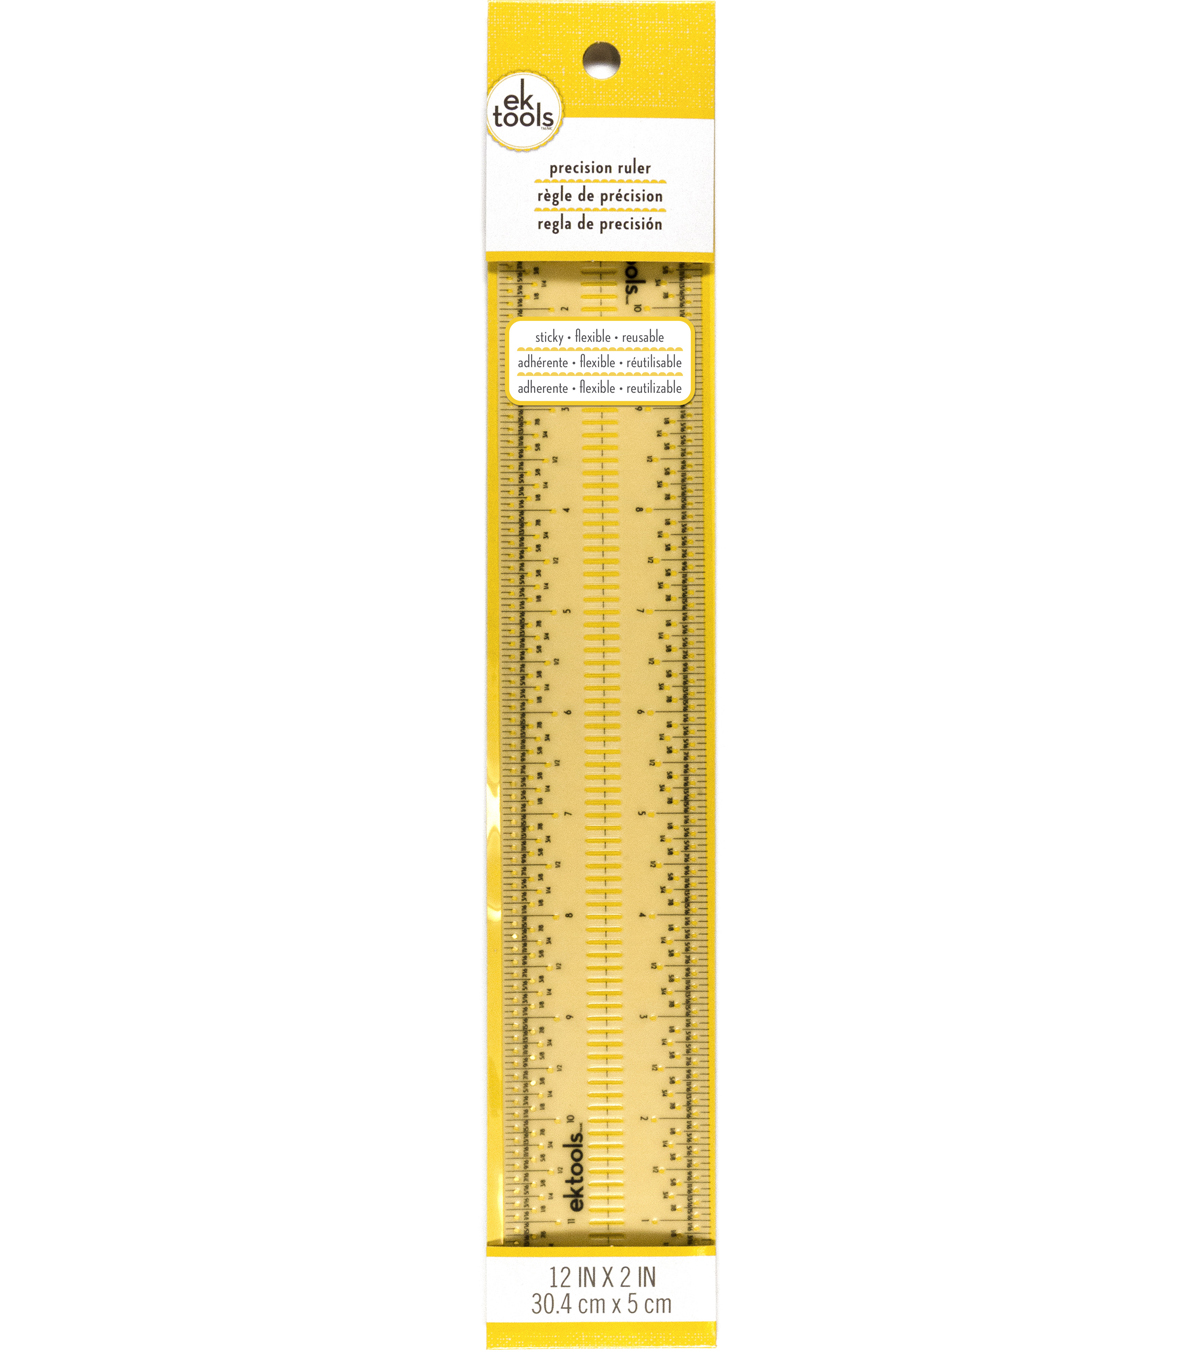 EK Tools Sticky Precision Ruler